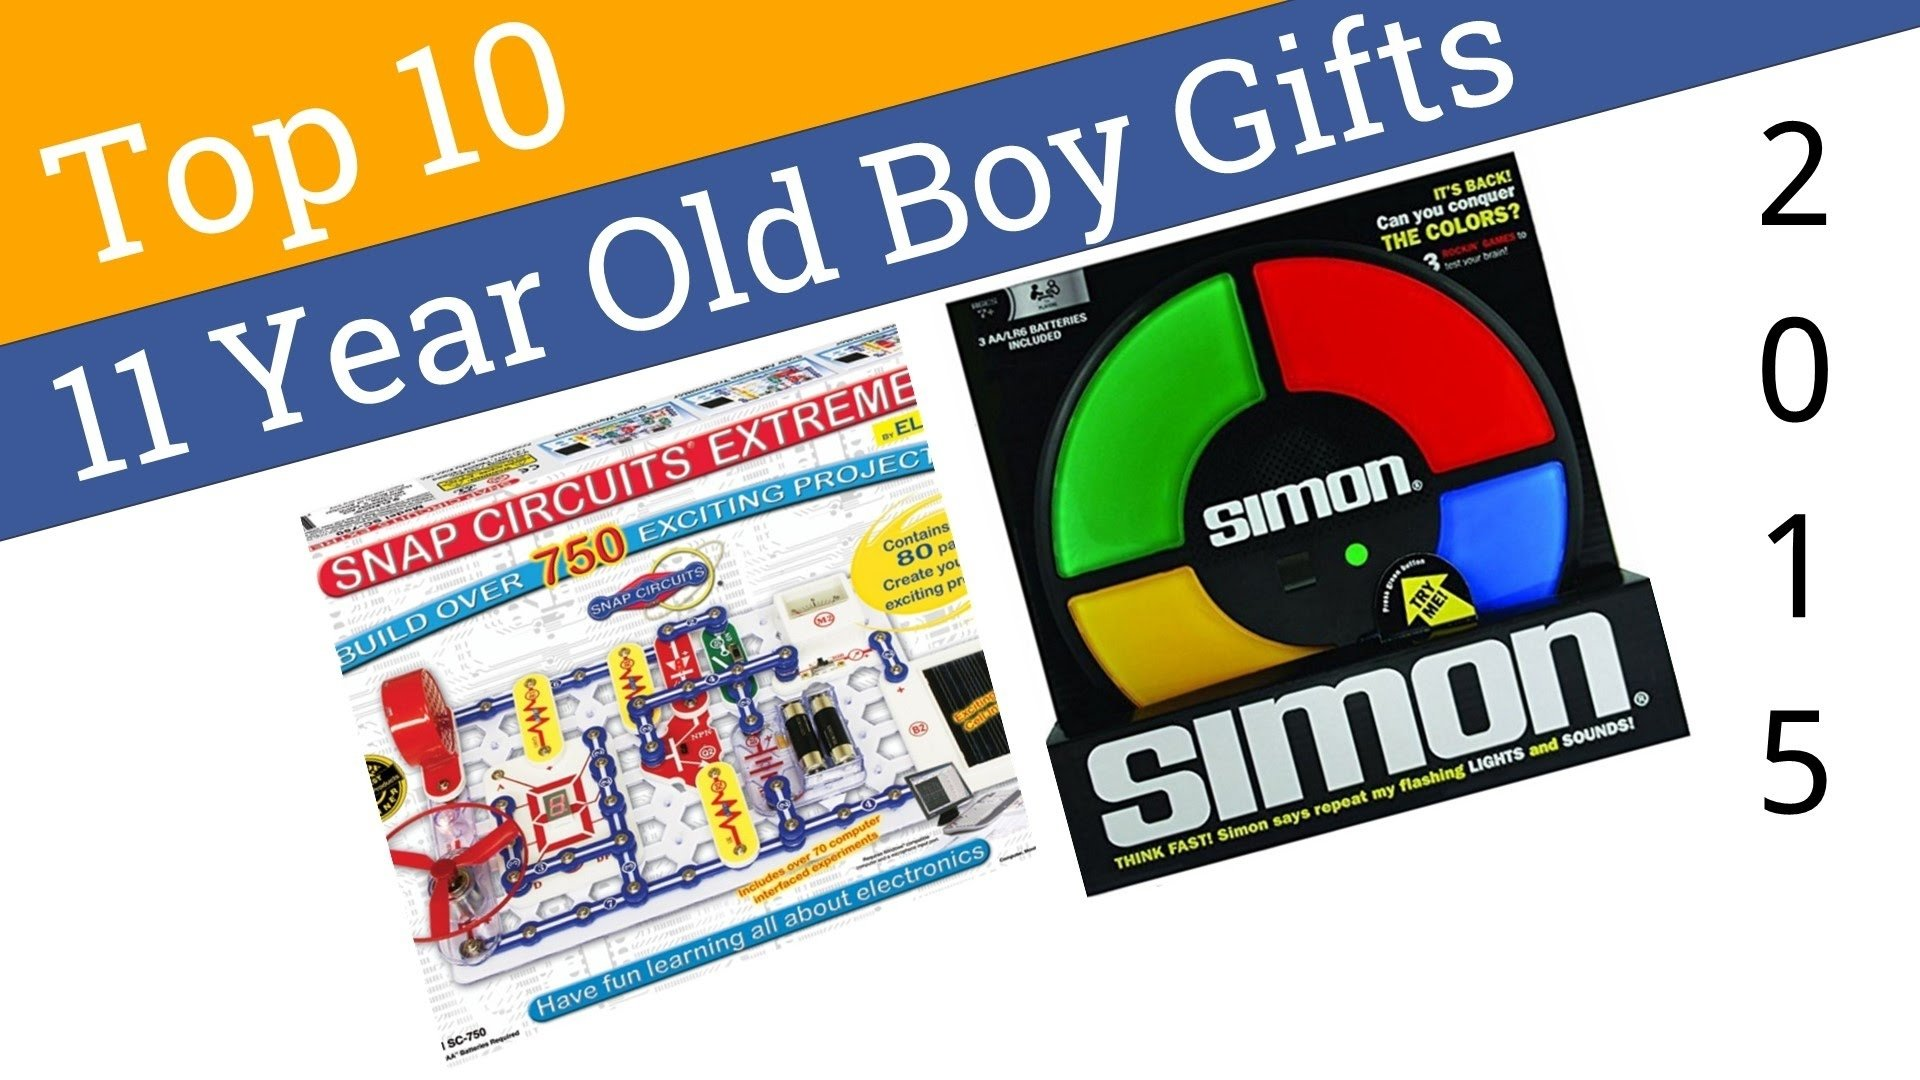 10 Fashionable 11 Year Old Boy Gift Ideas 10 best 11 year old boy gifts 2015 youtube 5 2020